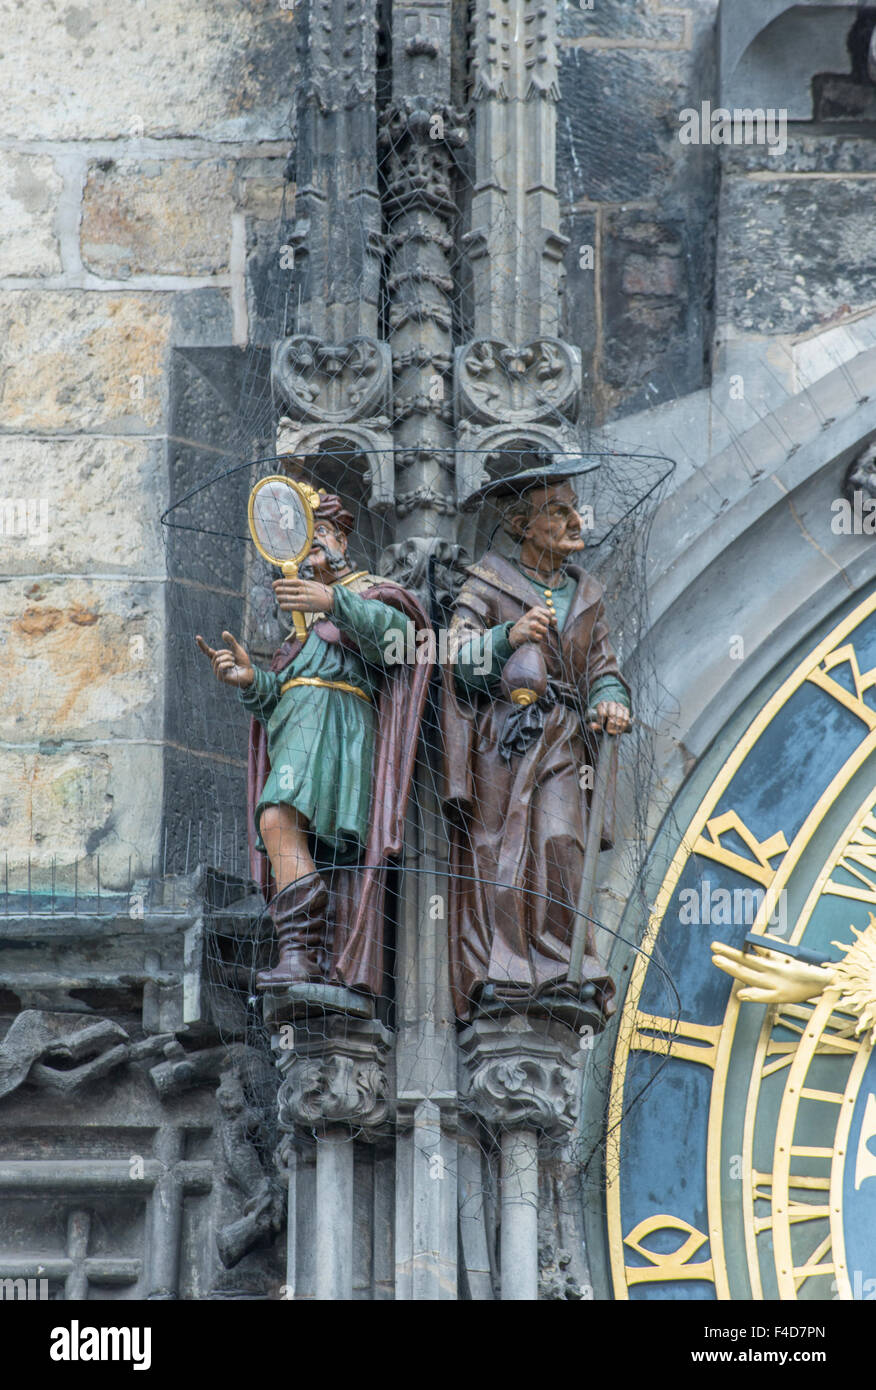 Europe, Czech Republic, Bohemia, Prague, Astronomical Clock, Vanity and Greed Statues depicted fears of medieval - Stock Image